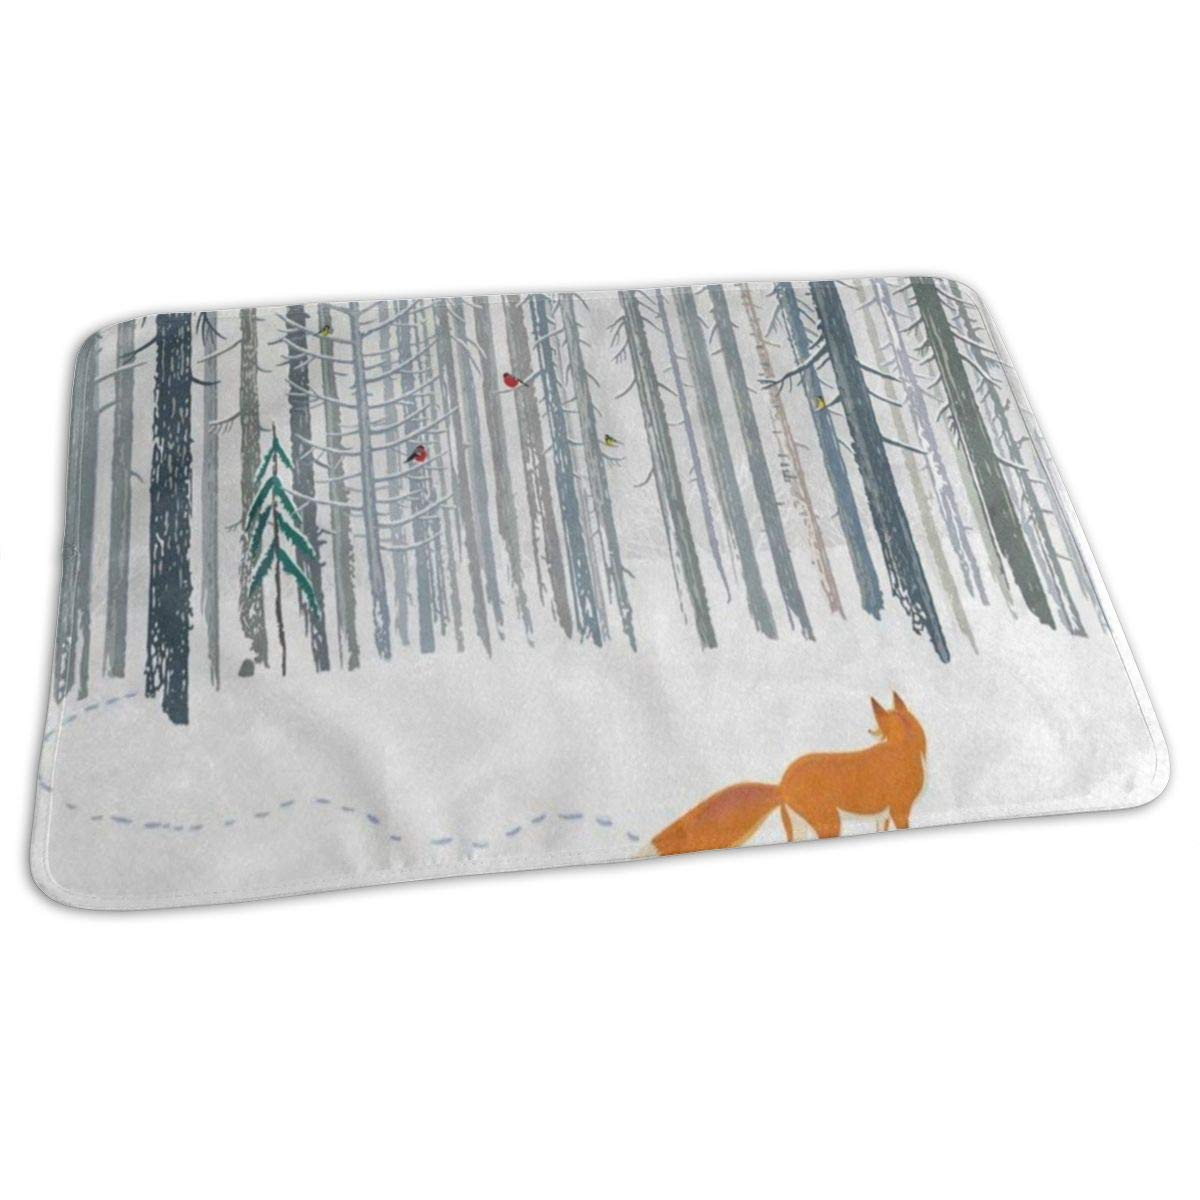 Changing Pad Winter Forest Animal Fox Owl Rabbit Baby Diaper Incontinence Pad Mat Unique Kids Waterproof Sheet Sheet For Any Places For Home Travel Bed Play Stroller Crib Car